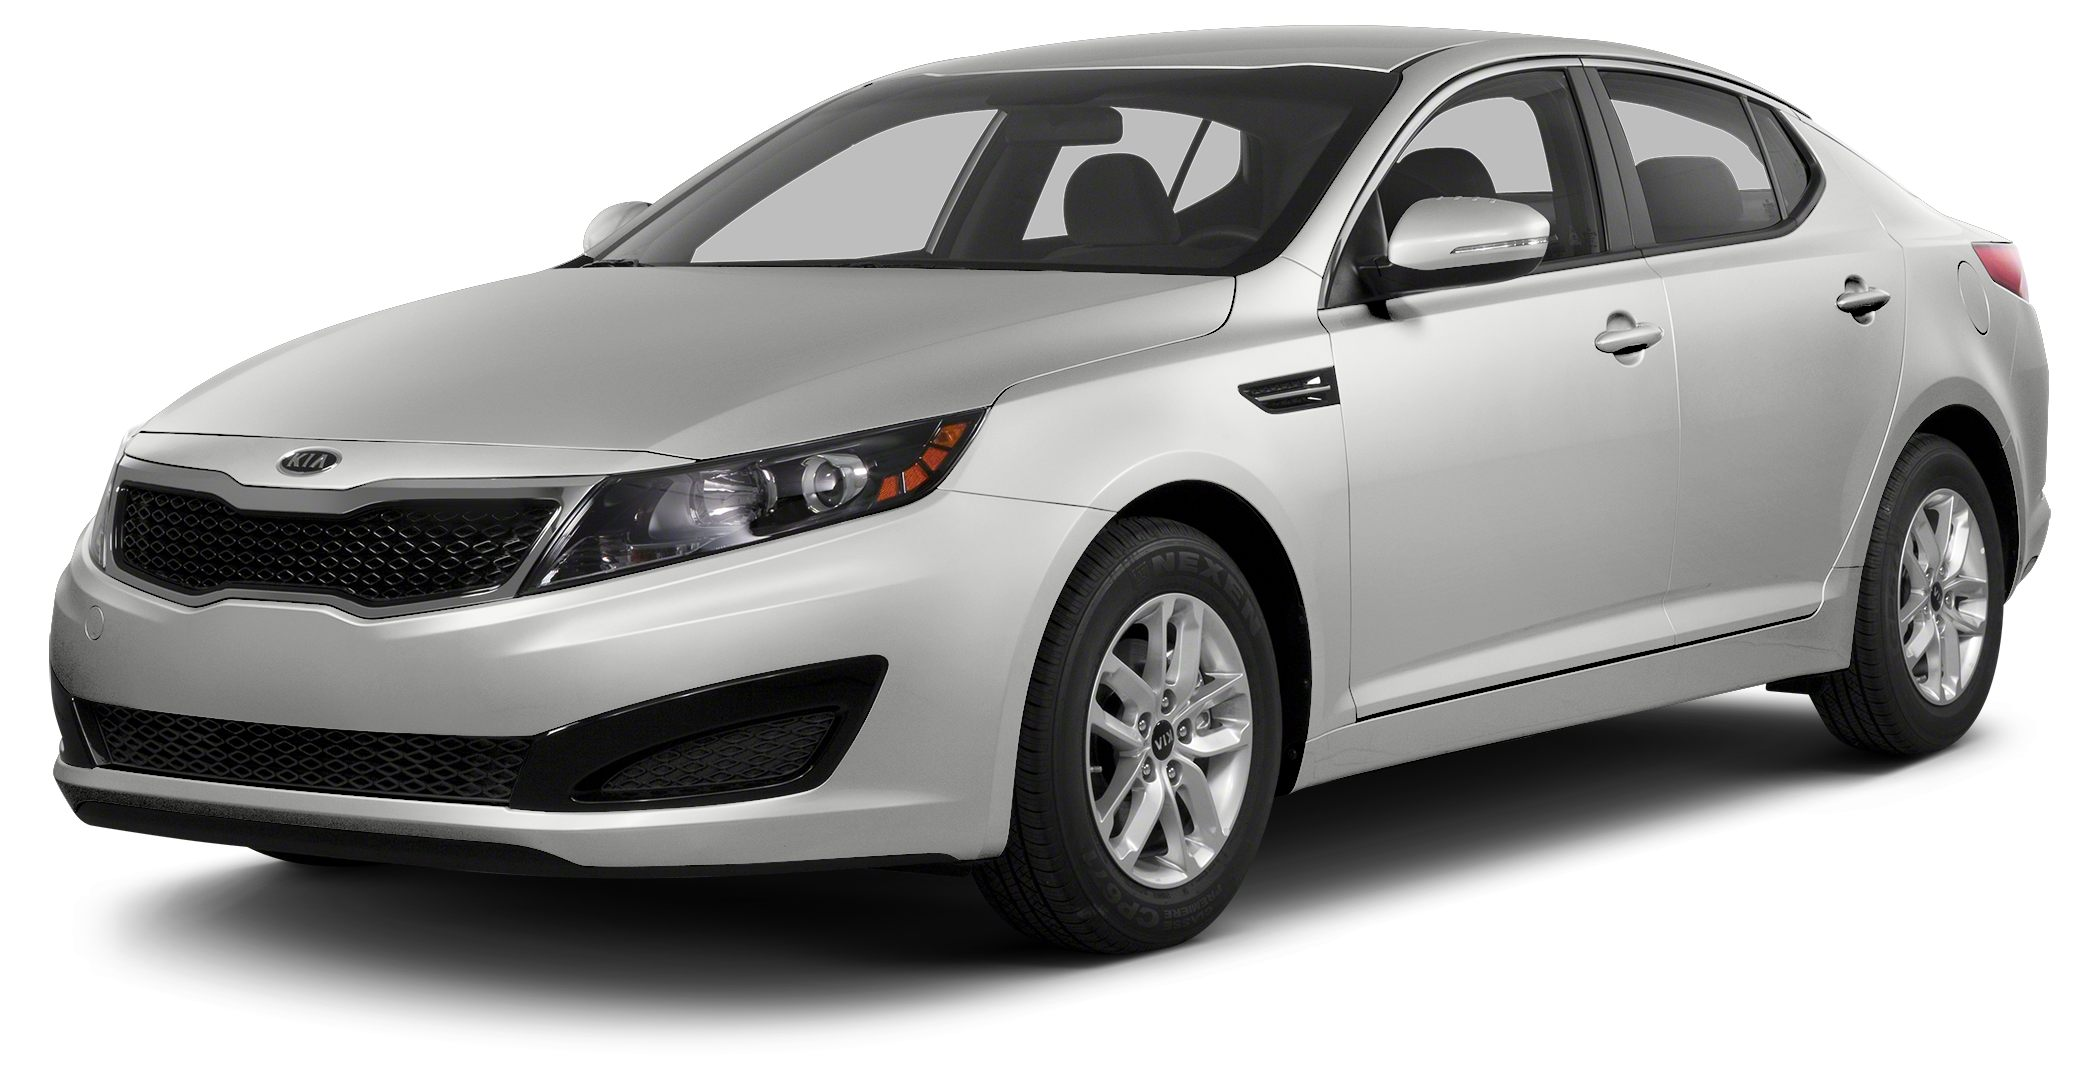 2013 Kia Optima SX THIS VEHICLE COMES WITH OUR BEST PRICE GUARANTEE Miles 45787Color White S